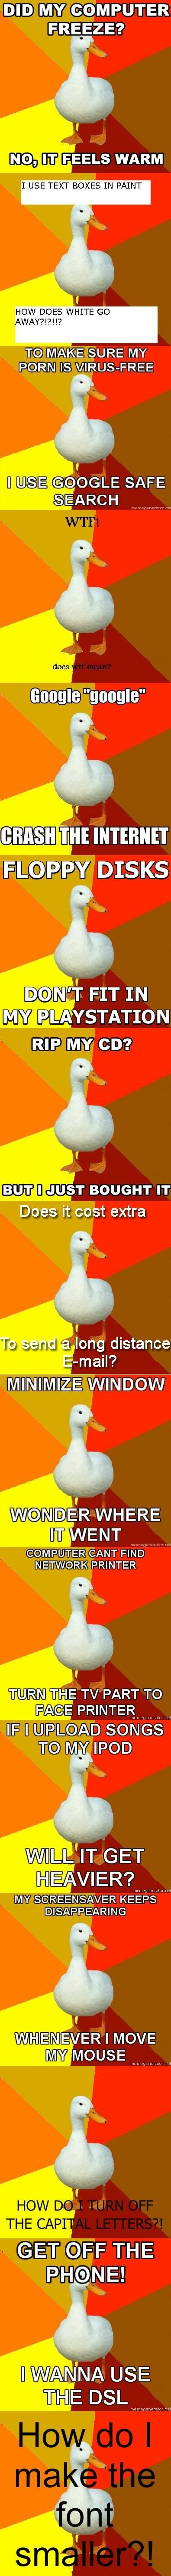 duckt - technologically impaired duck